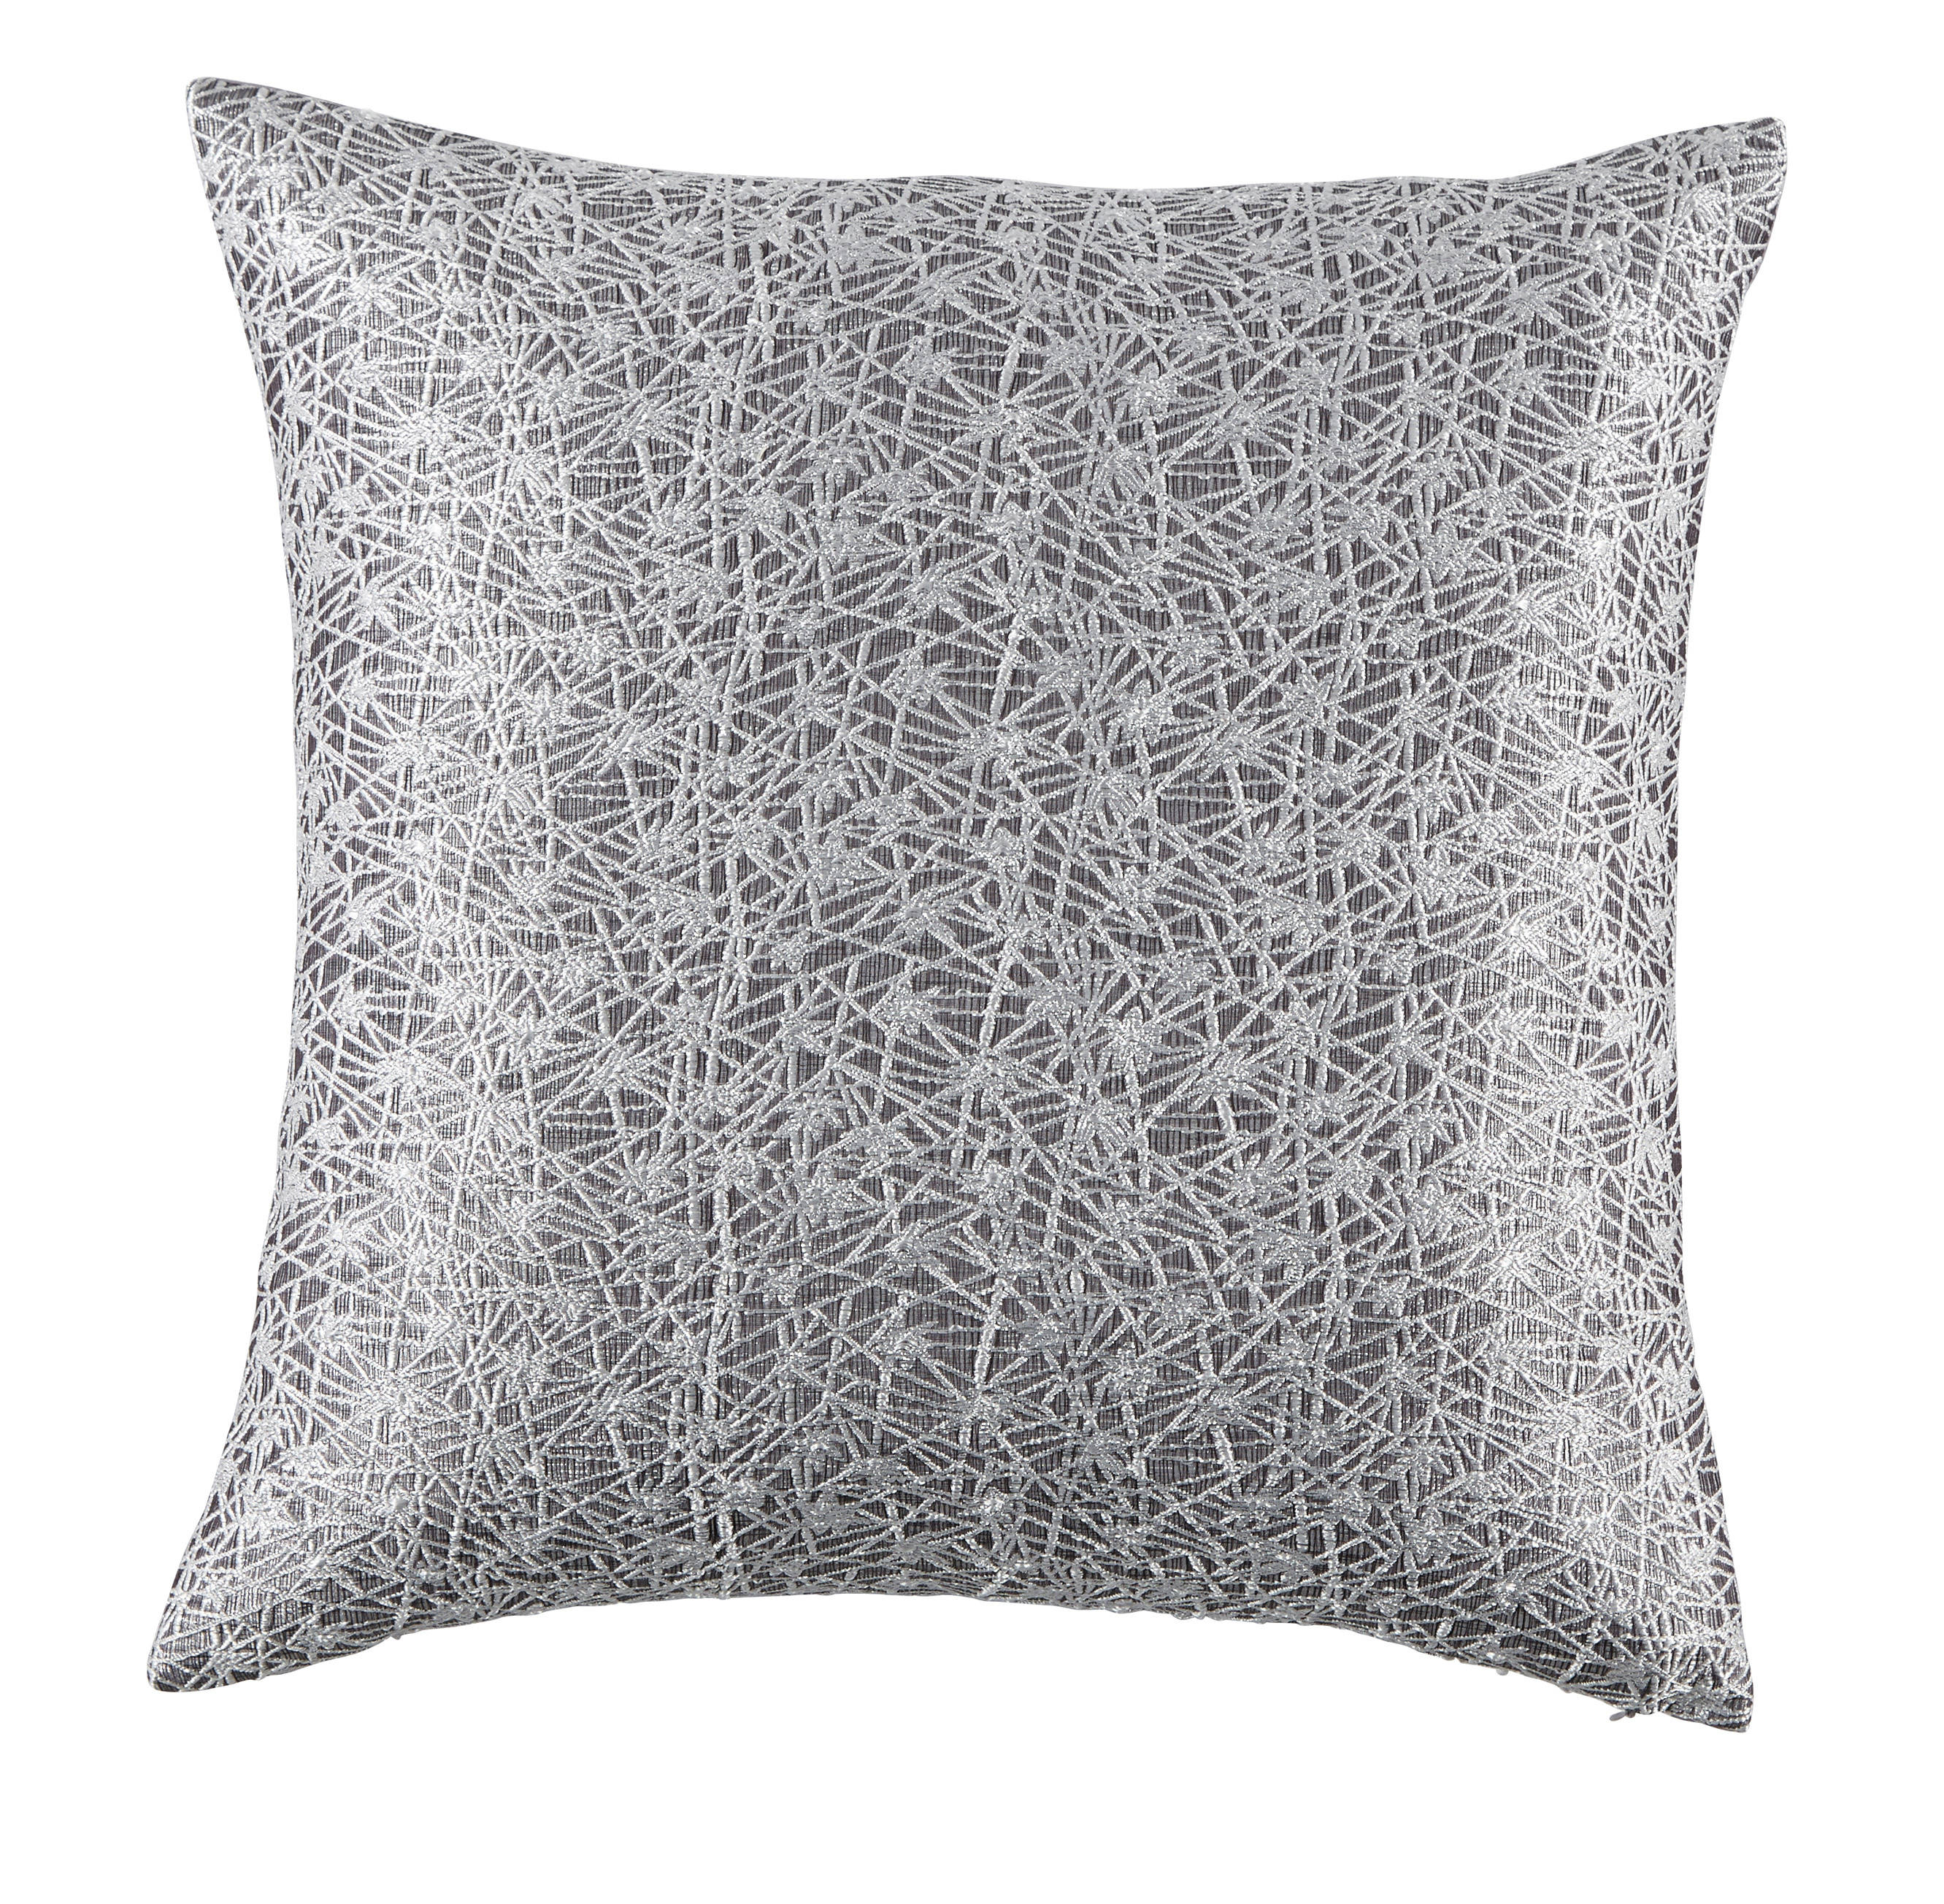 Ashley Furniture Asad Gunsmoke Fabric Pillow Click To Enlarge